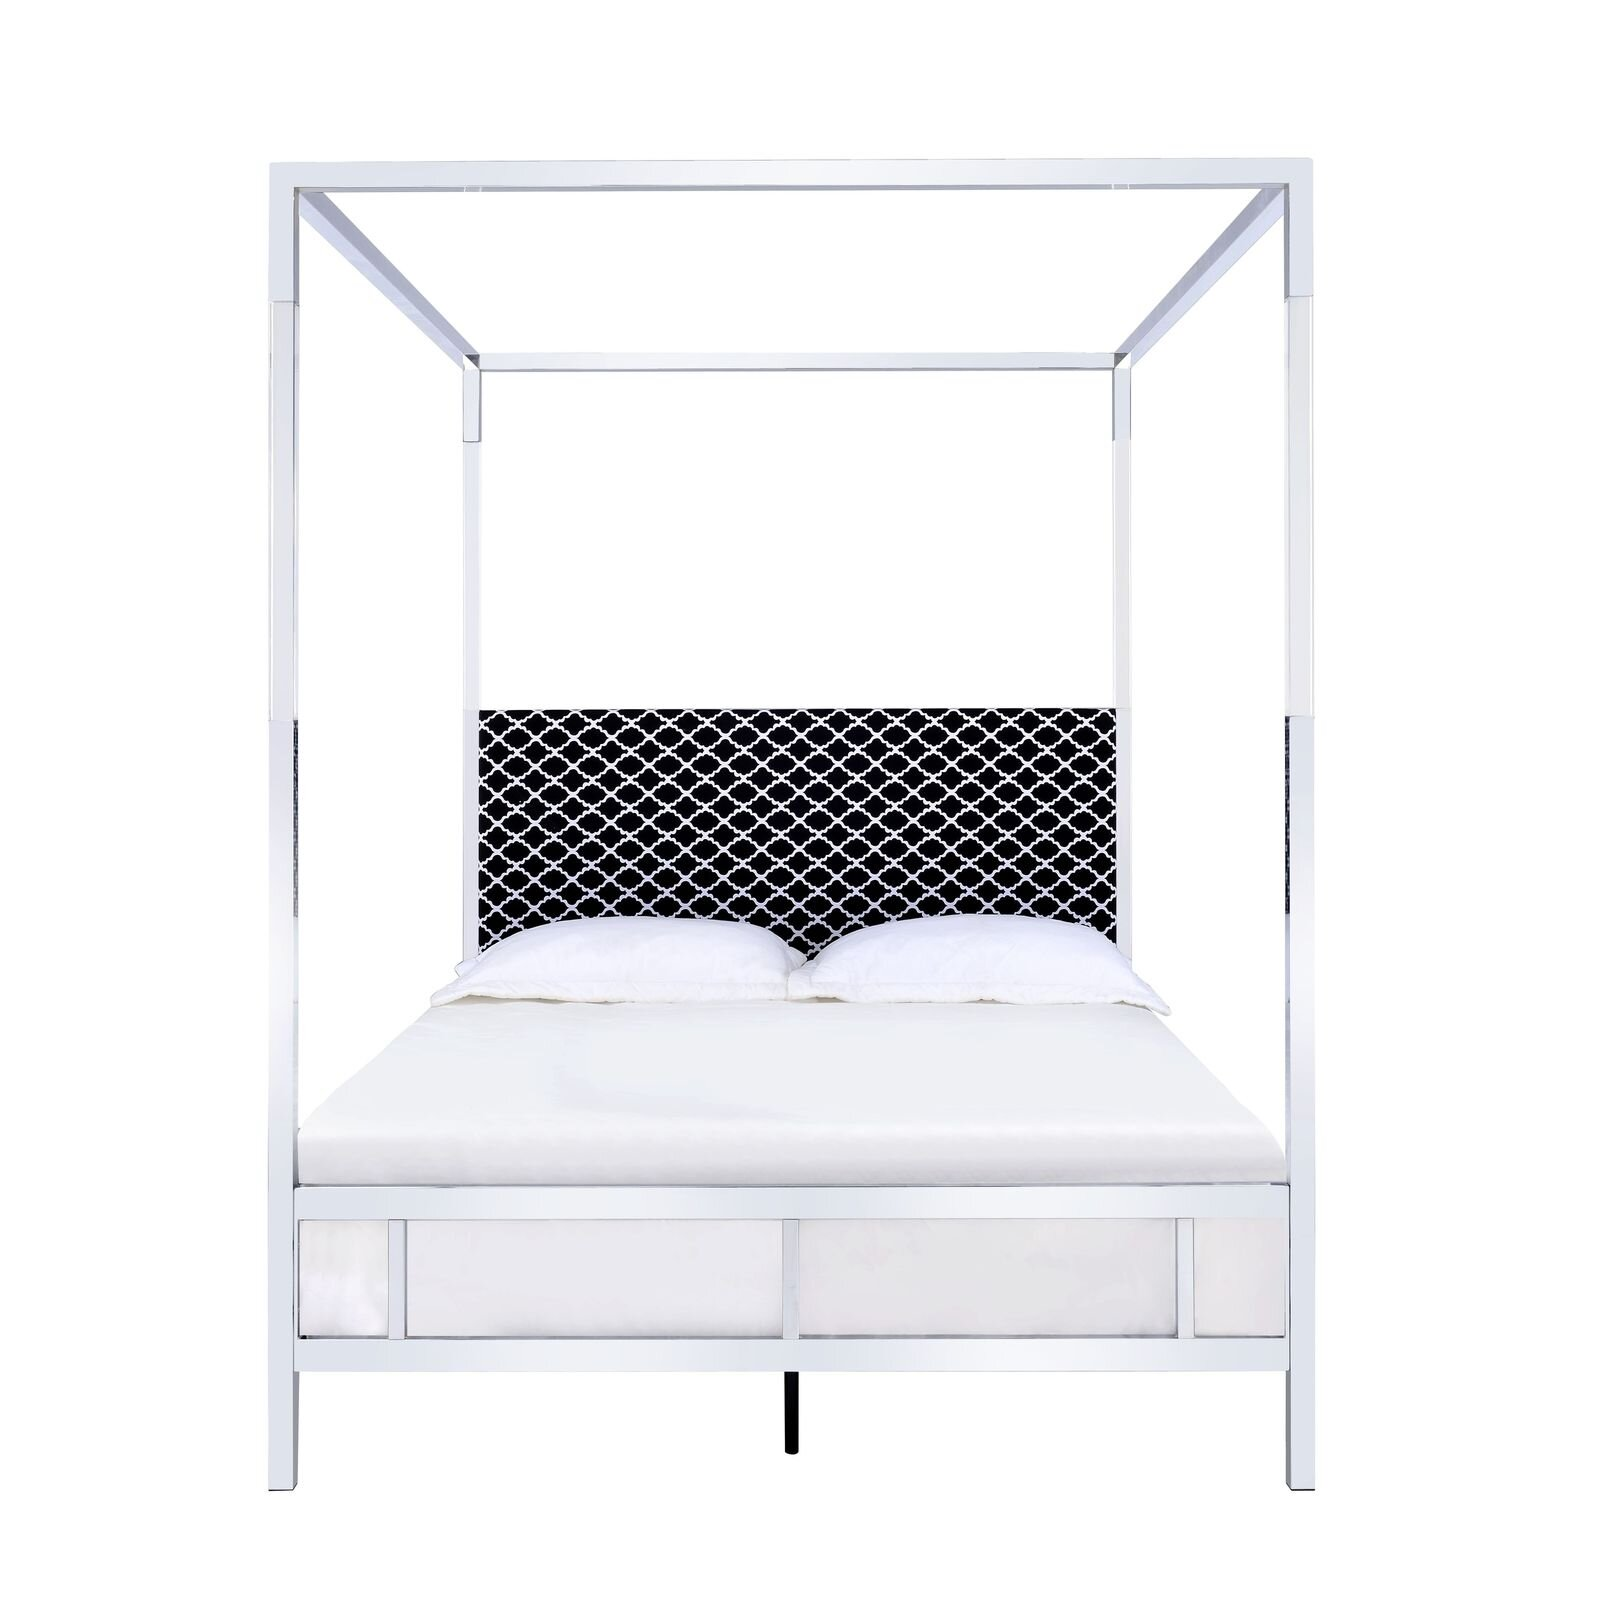 Glam Upholstered Canopy Beds You Ll Love In 2021 Wayfair